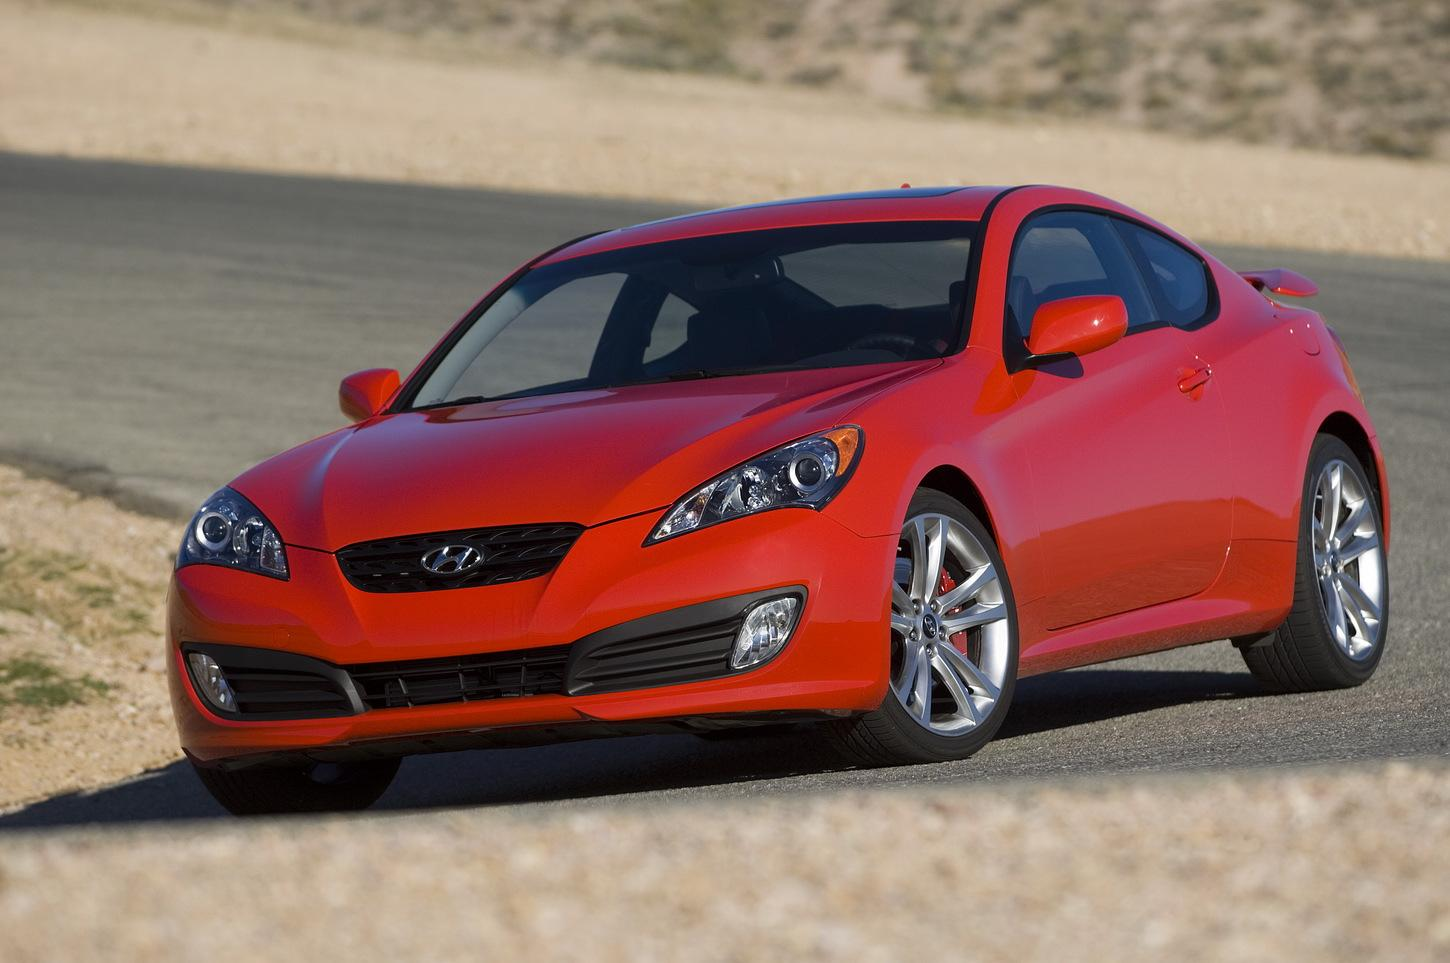 hight resolution of 2010 hyundai genesis coupe r spec revealed details and pricing it s your auto world new cars auto news reviews photos videos